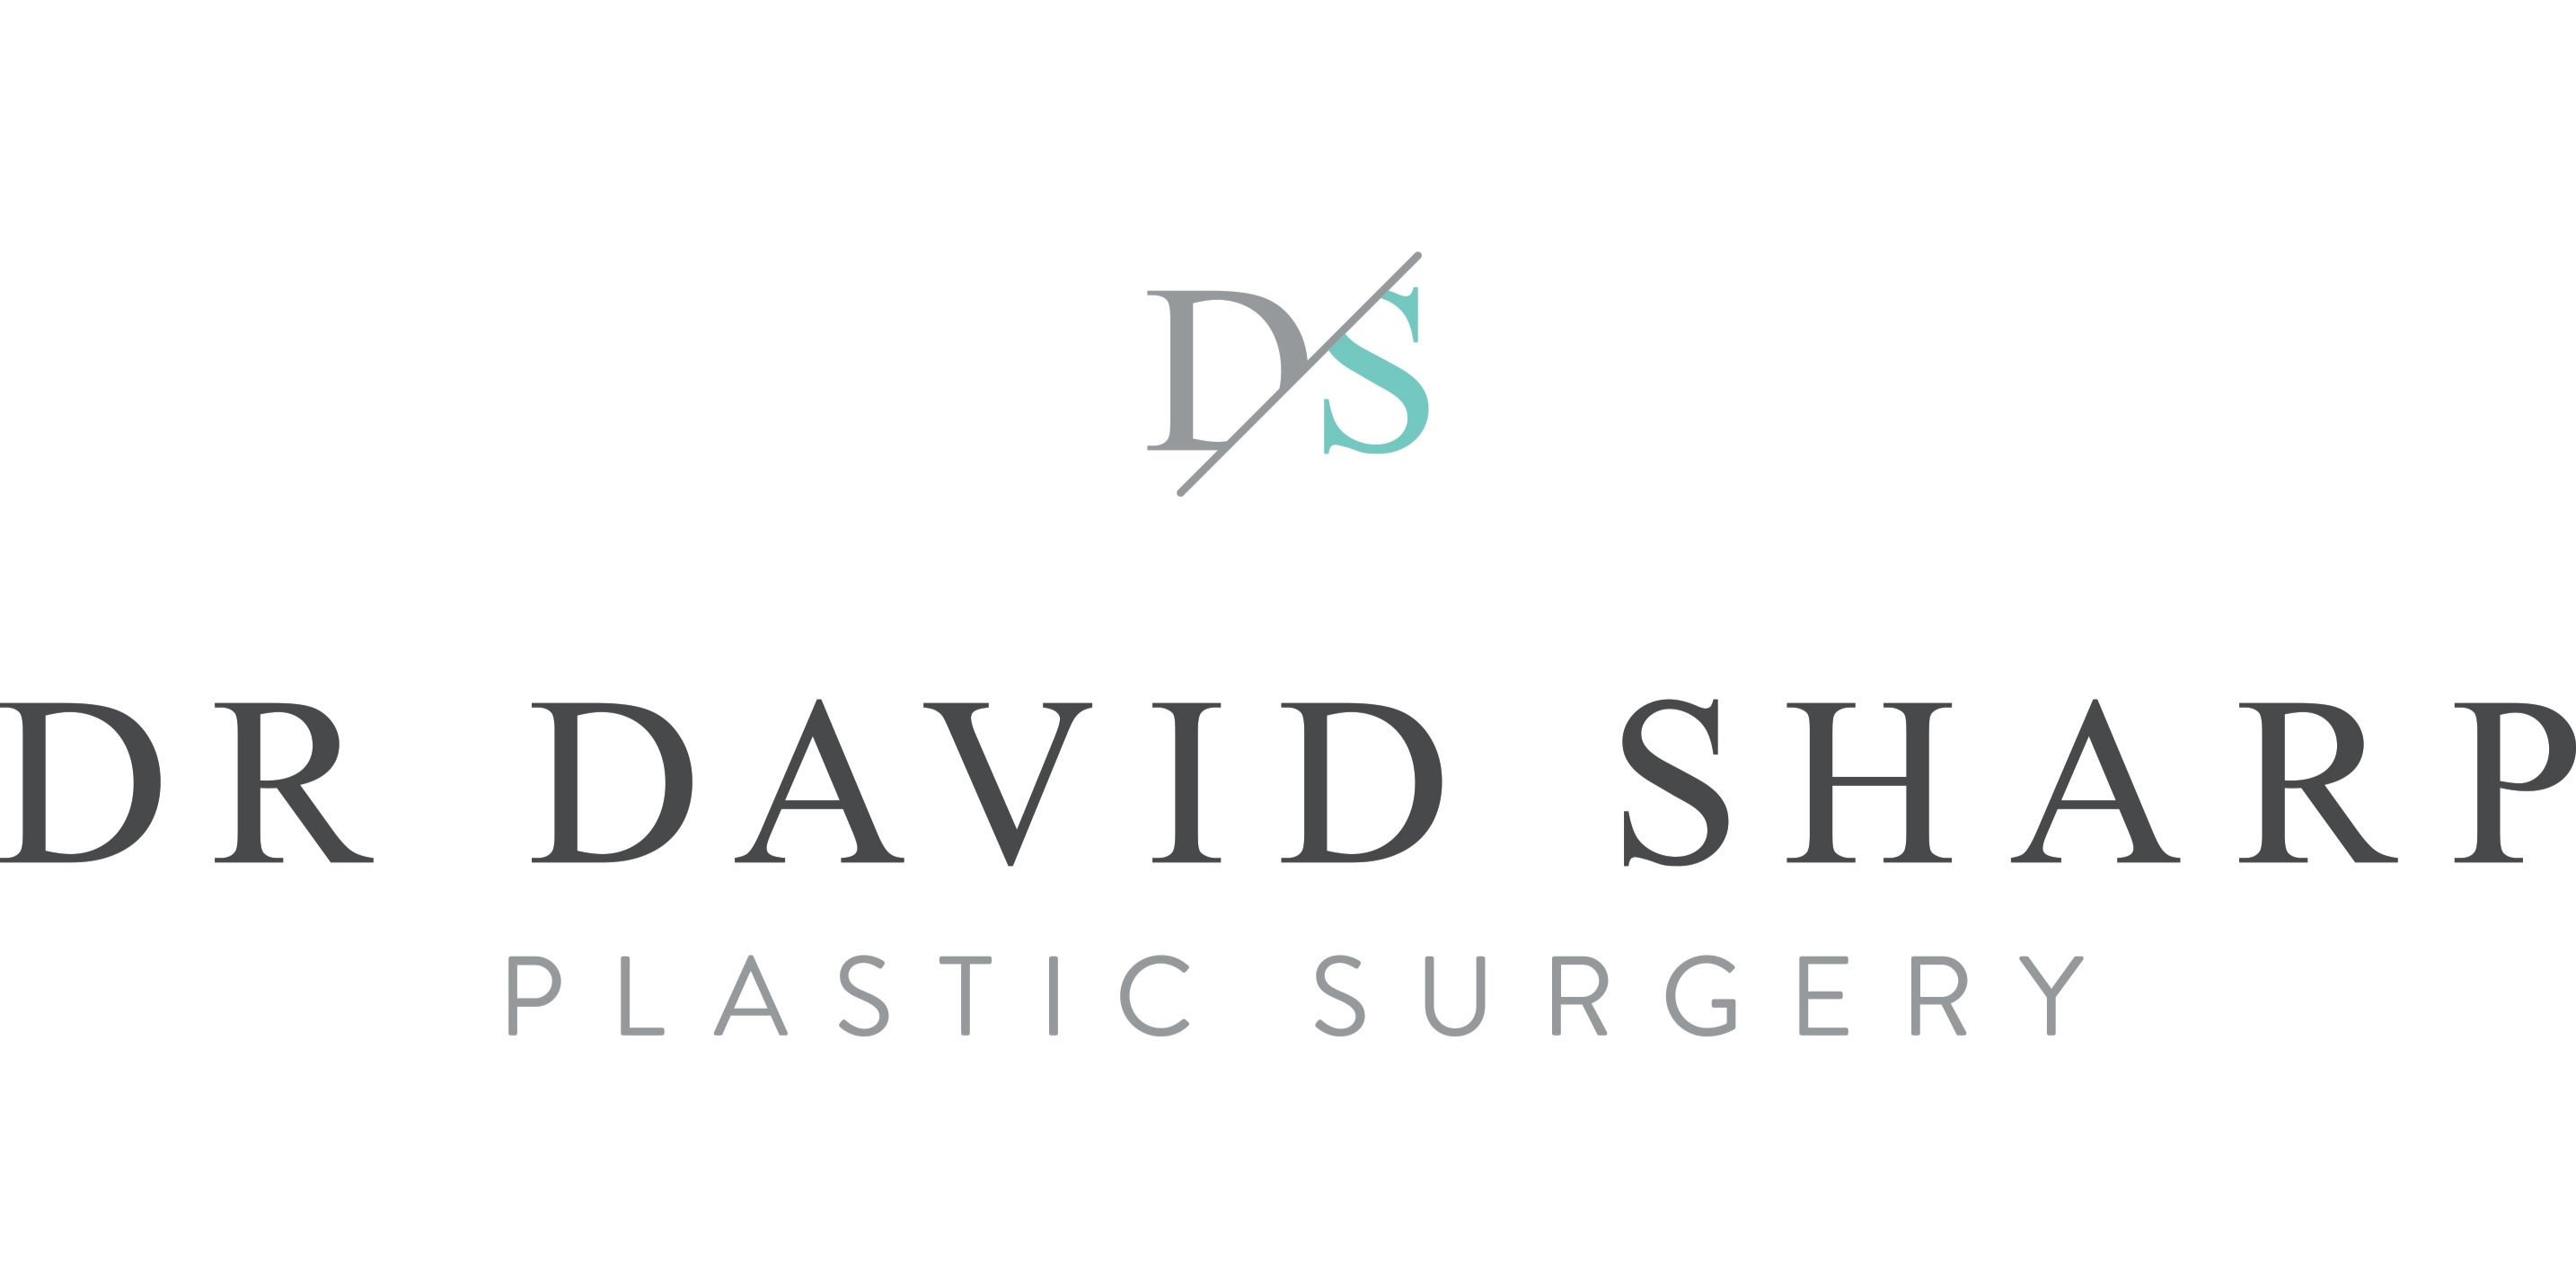 Dr David Sharp Plastic Surgery